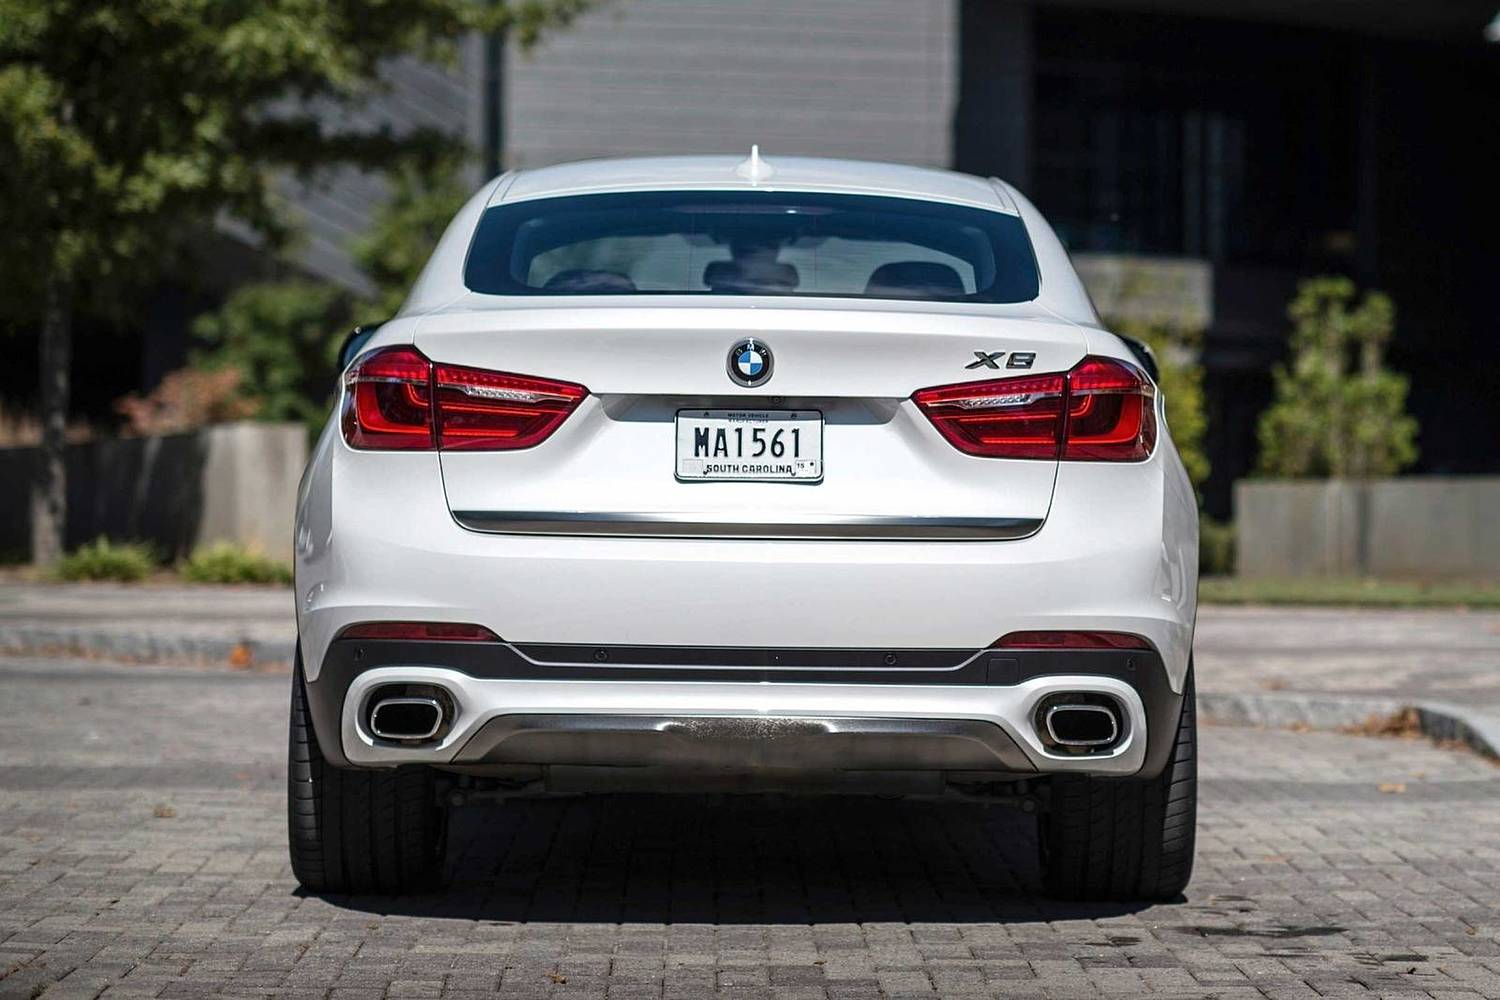 BMW X6 xDrive50i 4dr SUV Exterior (2017 model year shown)